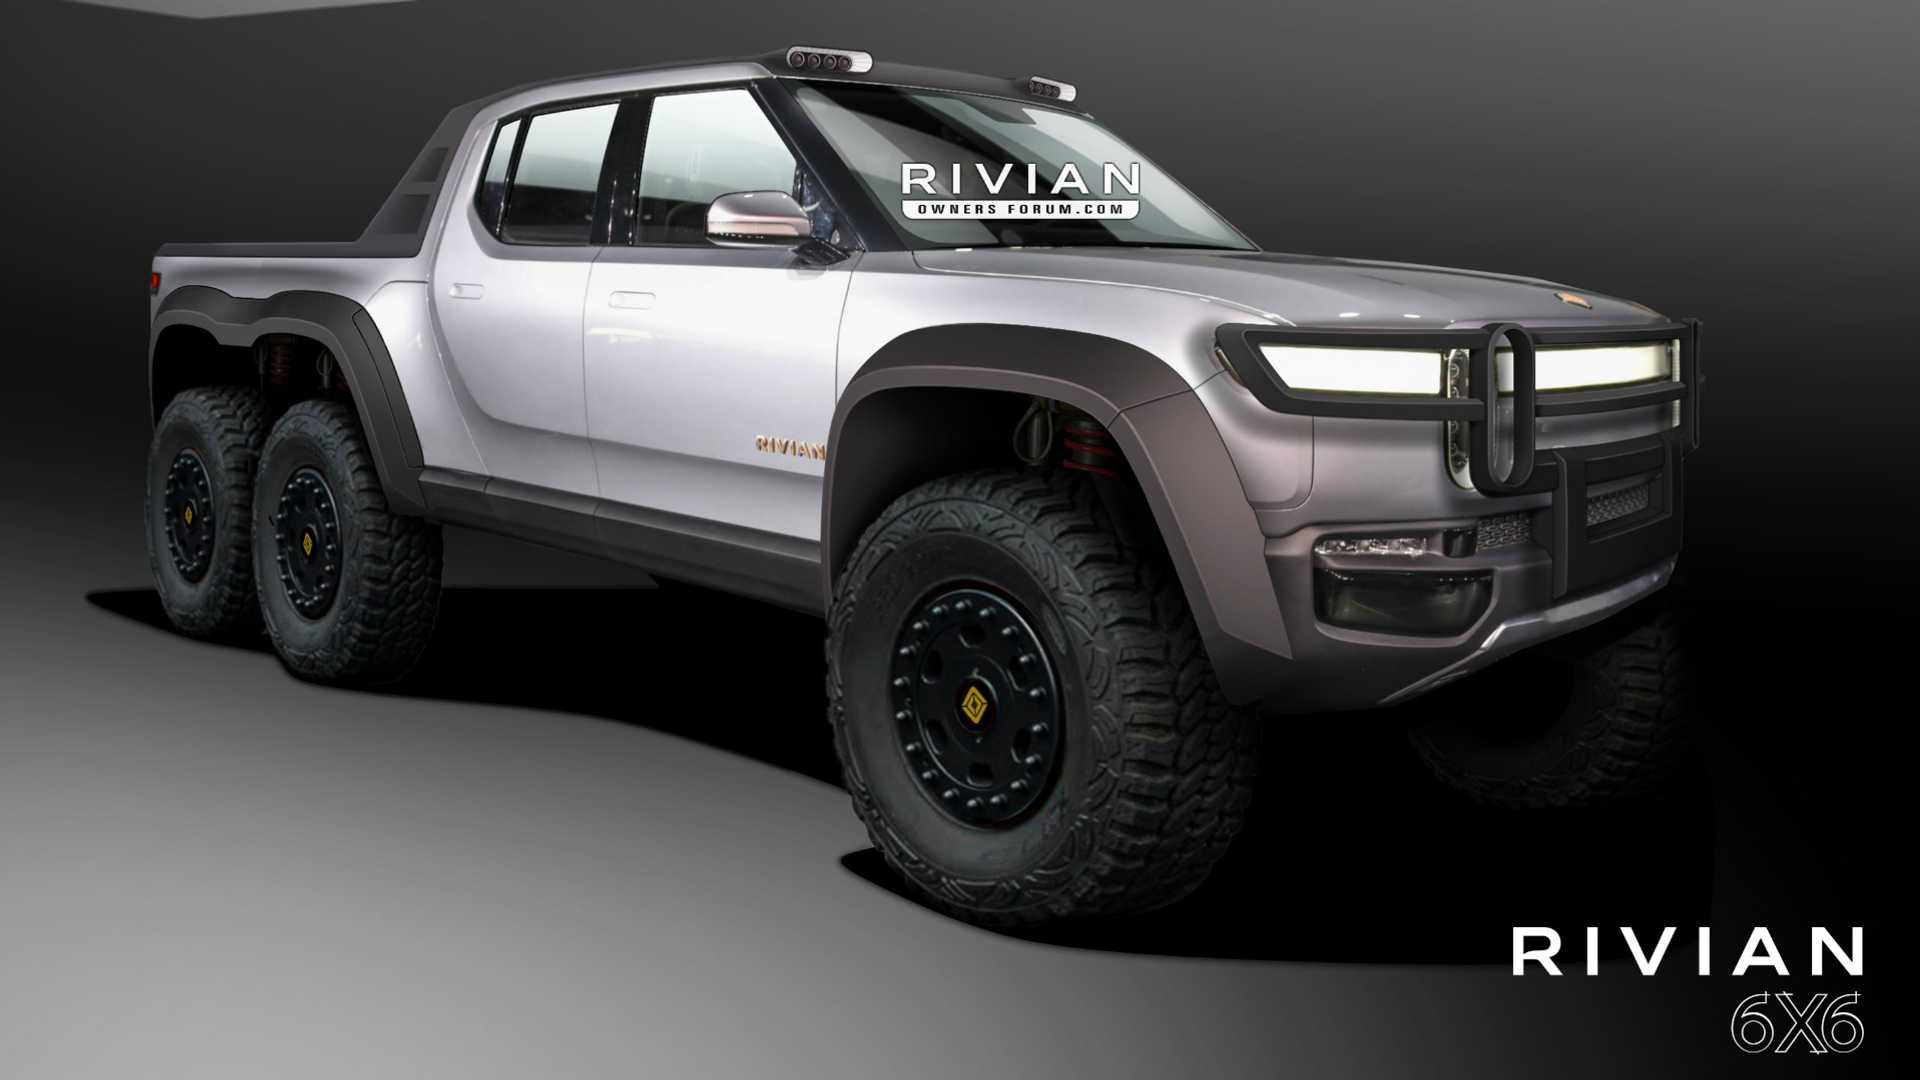 Rivian R1t Pickup Truck Rendered As 6 Wheel Drive Monster Off Roader